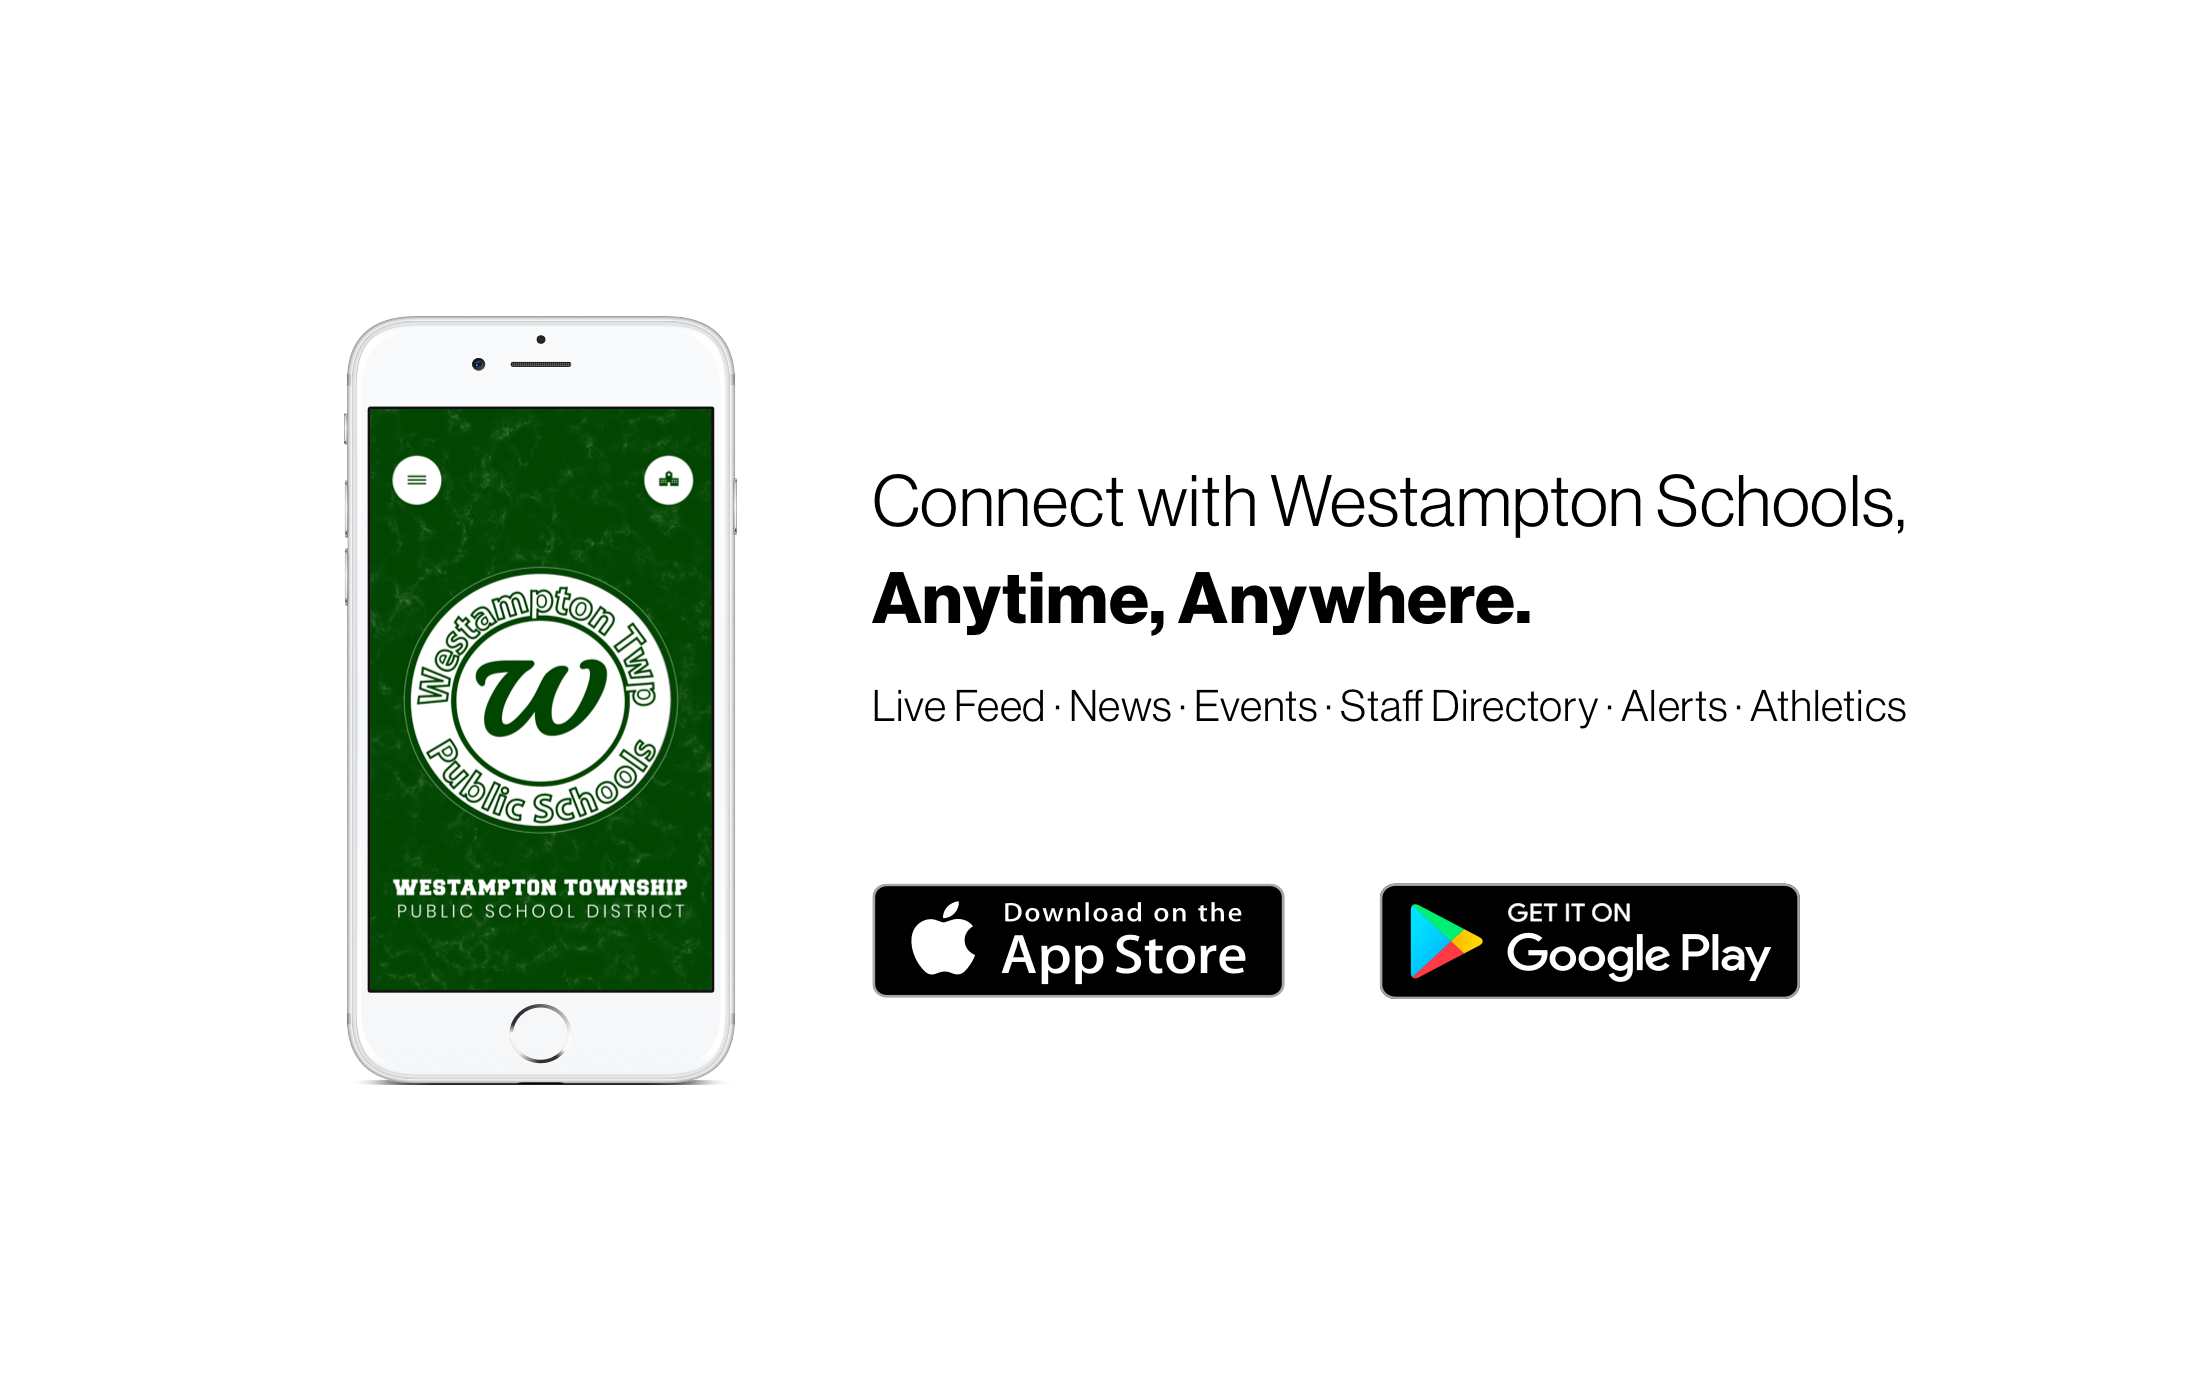 Connect with Westampton Schools